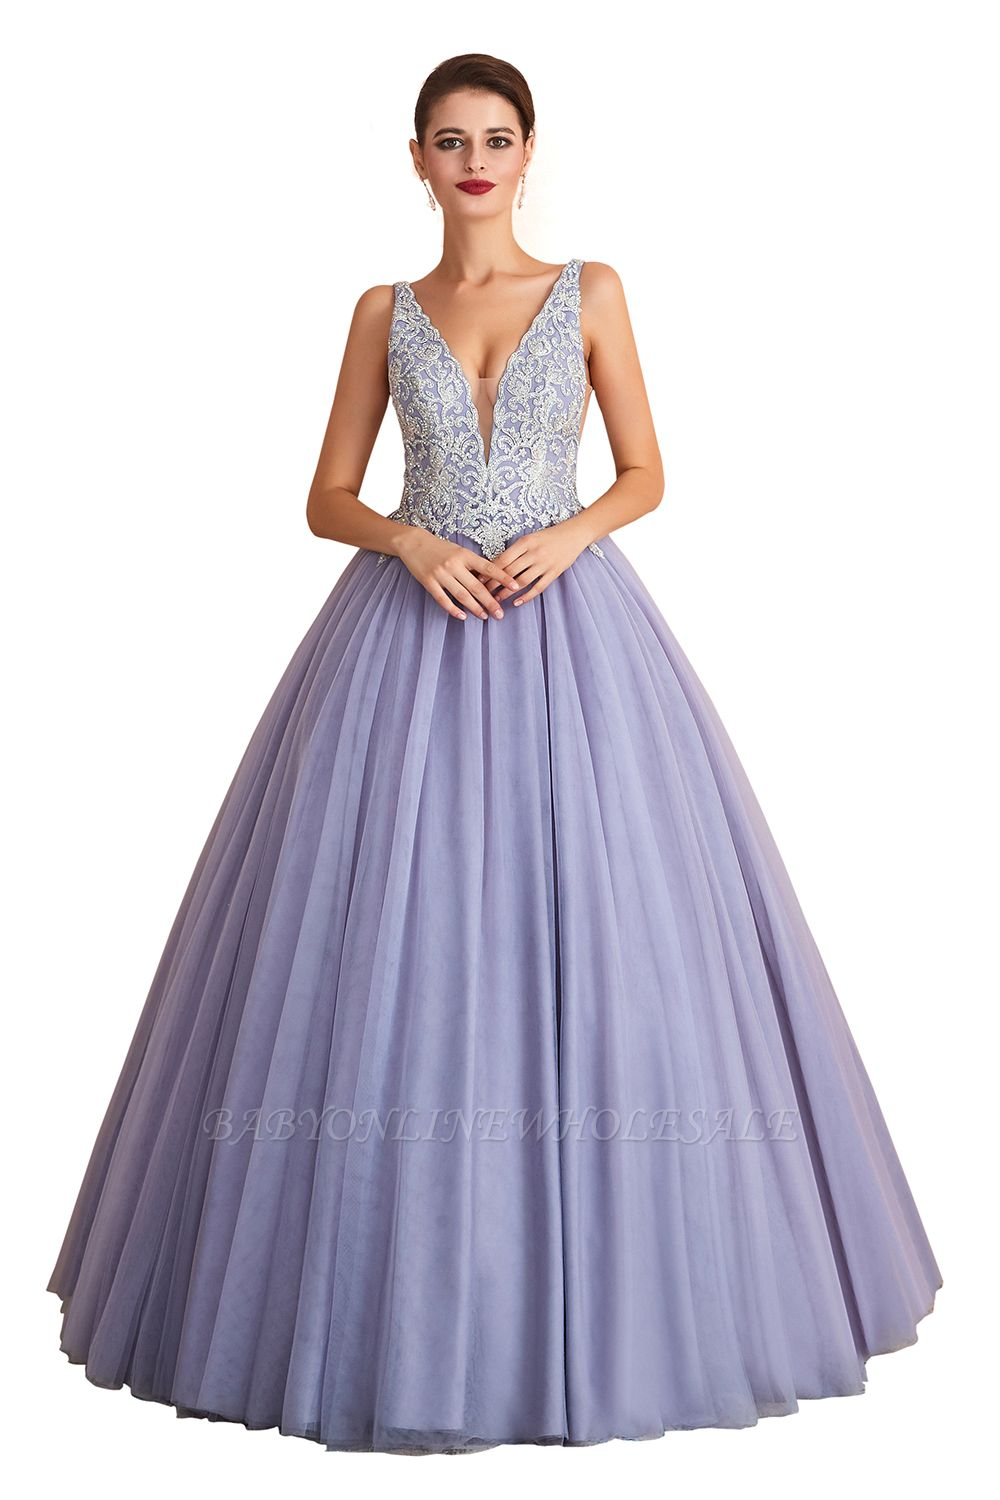 Cerelia | Elegant Princess V-neck Ball gown Lavender Prom Dress with Appliques, Deep V-neck Evening Gowns with Pleats